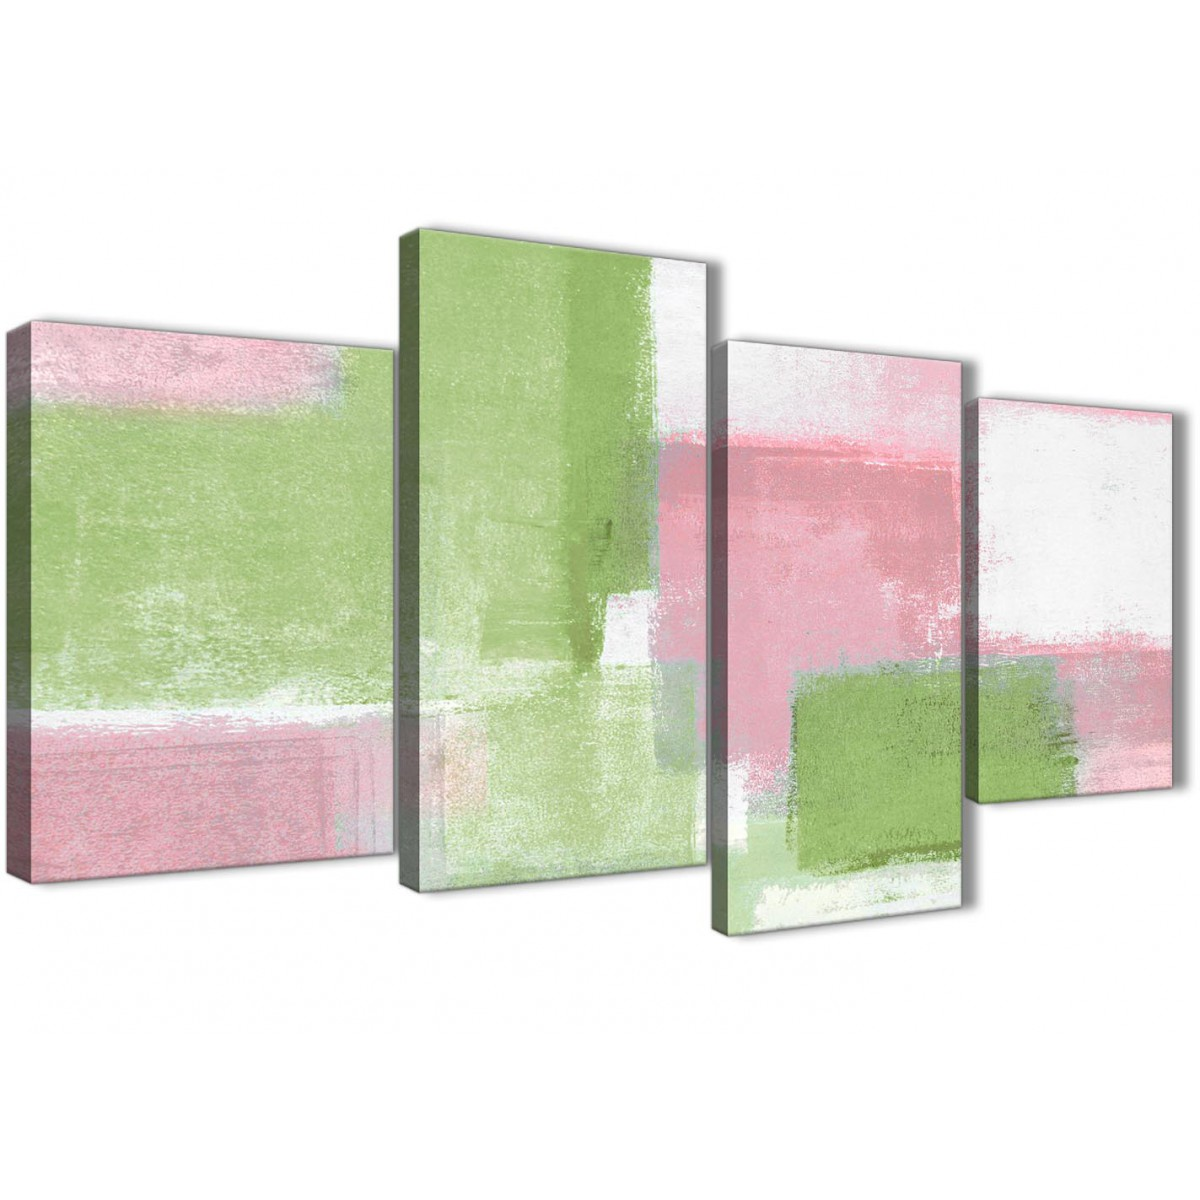 Bedroom Canvas Wall Art Uk: Large Pink Lime Green Abstract Bedroom Canvas Pictures